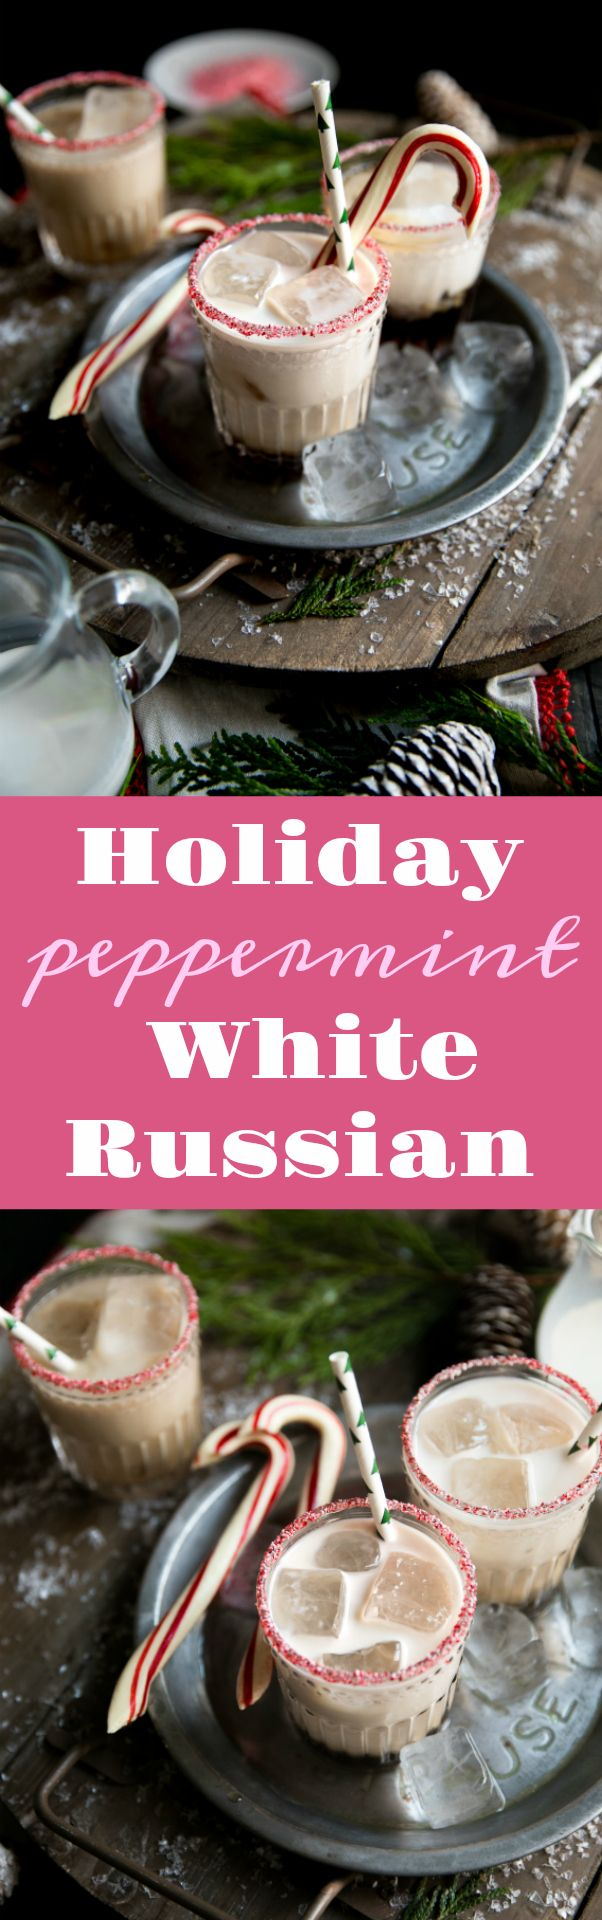 Candy canes, finely crushed 1 tablespoon granulated sugar Ice 1-ounce Peppermint Schnapps 1-ounce Kahlúa 1-ounce vodka Half and half or whole milk Additional candy canes, to garnish